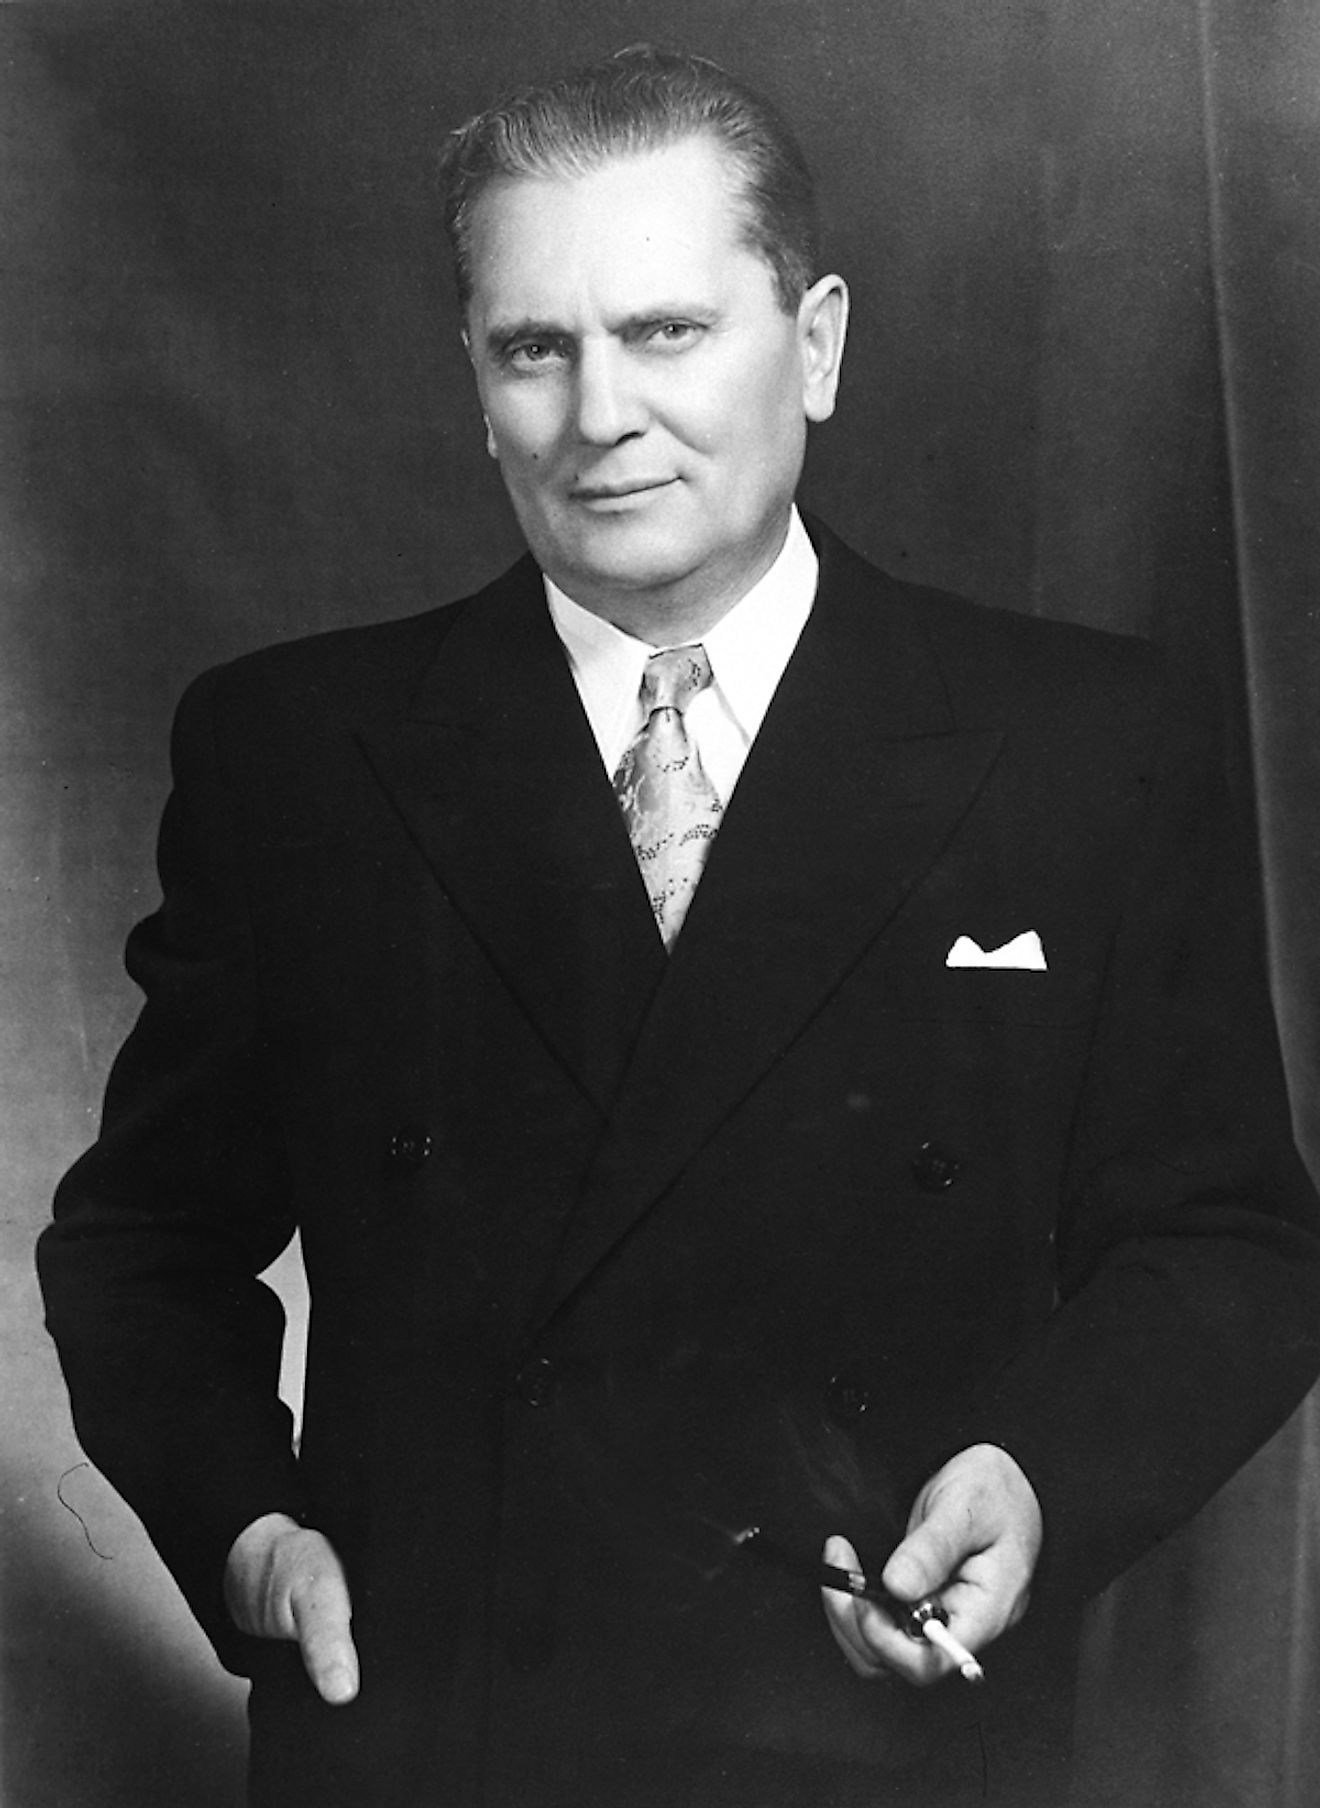 Marshal Tito, the President of the Federal People's Republic of Yugoslavia, who came to India on December 16, 1954. Image credit: Photo Division, Ministry of Information & Broadcasting, Government of India/Public domain